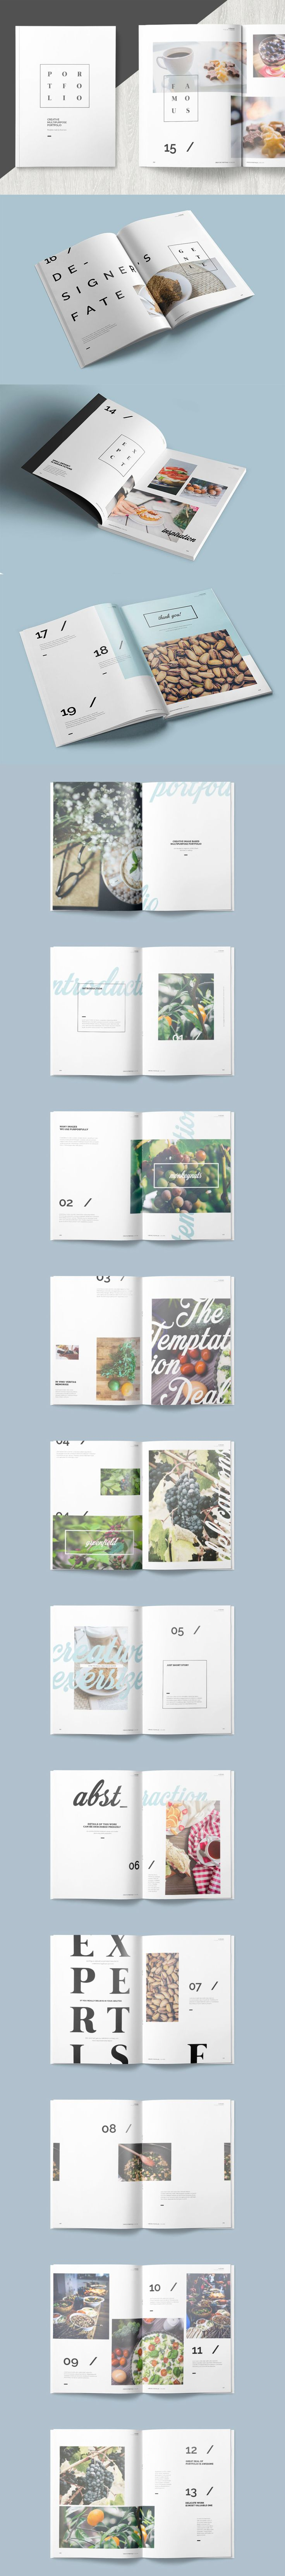 Multipurpose Portfolio Brochure Template InDesign INDD - 32 Pages, A4 International And Us Letter Size